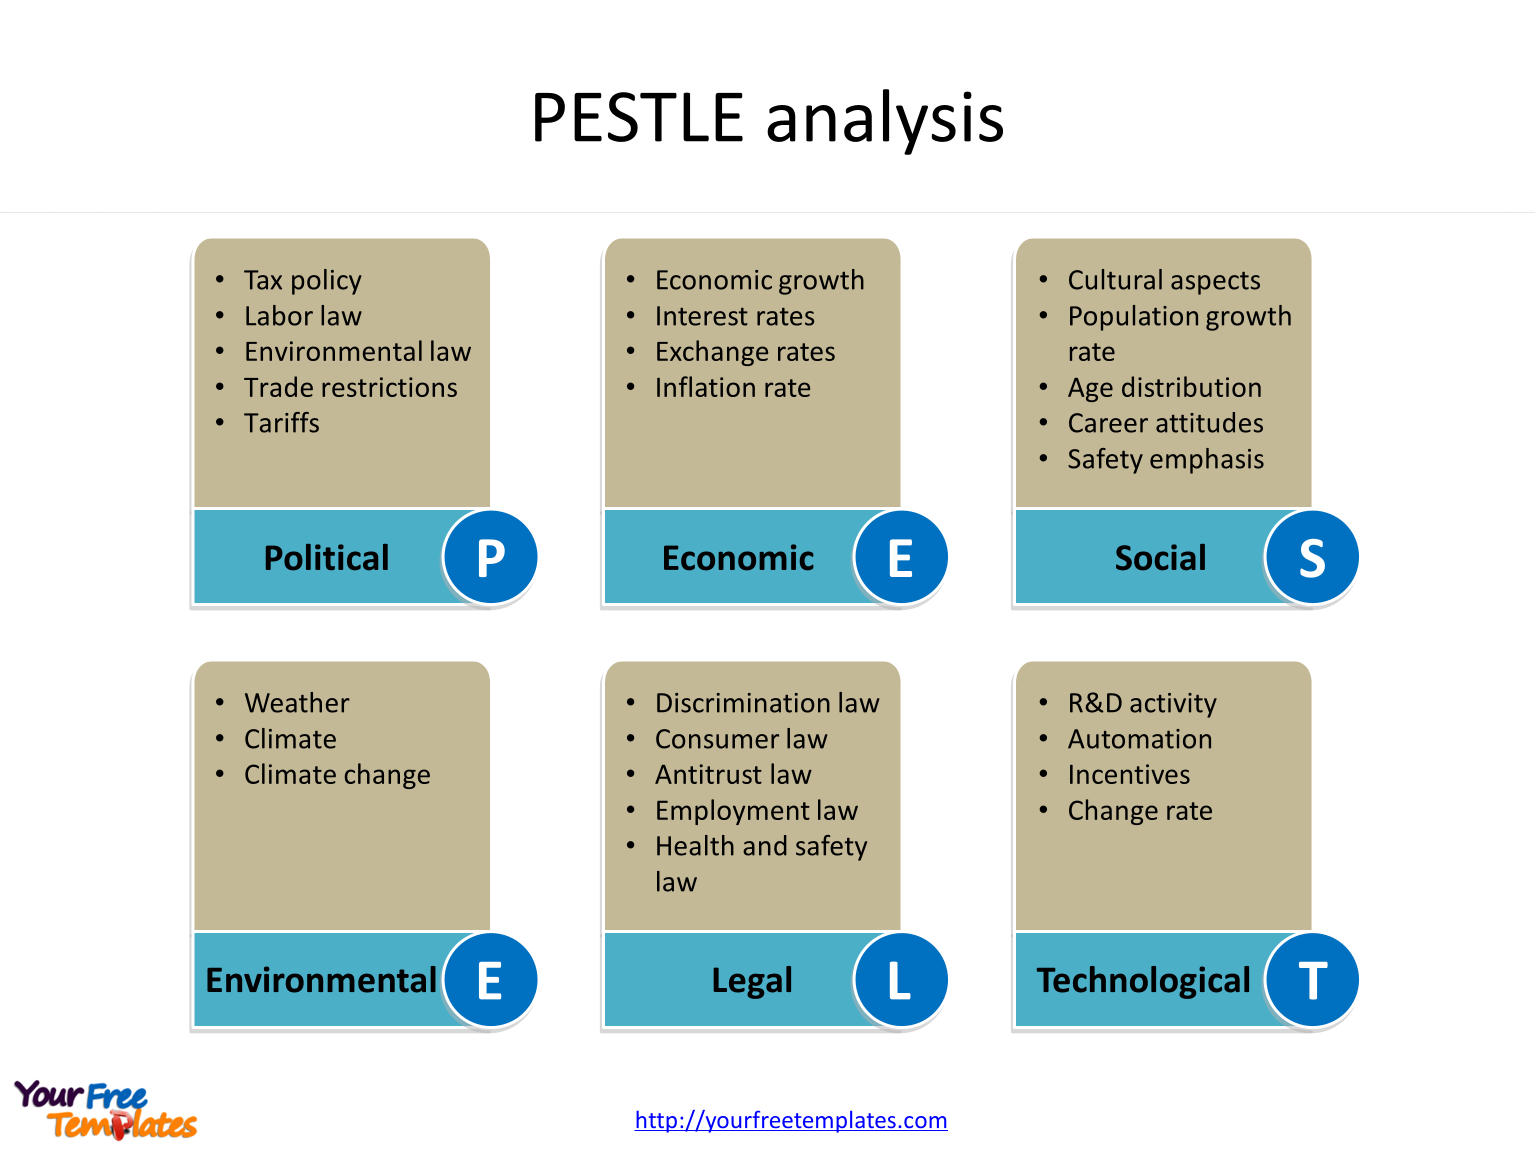 PESTLE analysis template of Political, Economic, Social, Technological, Legal and Environmental factors.